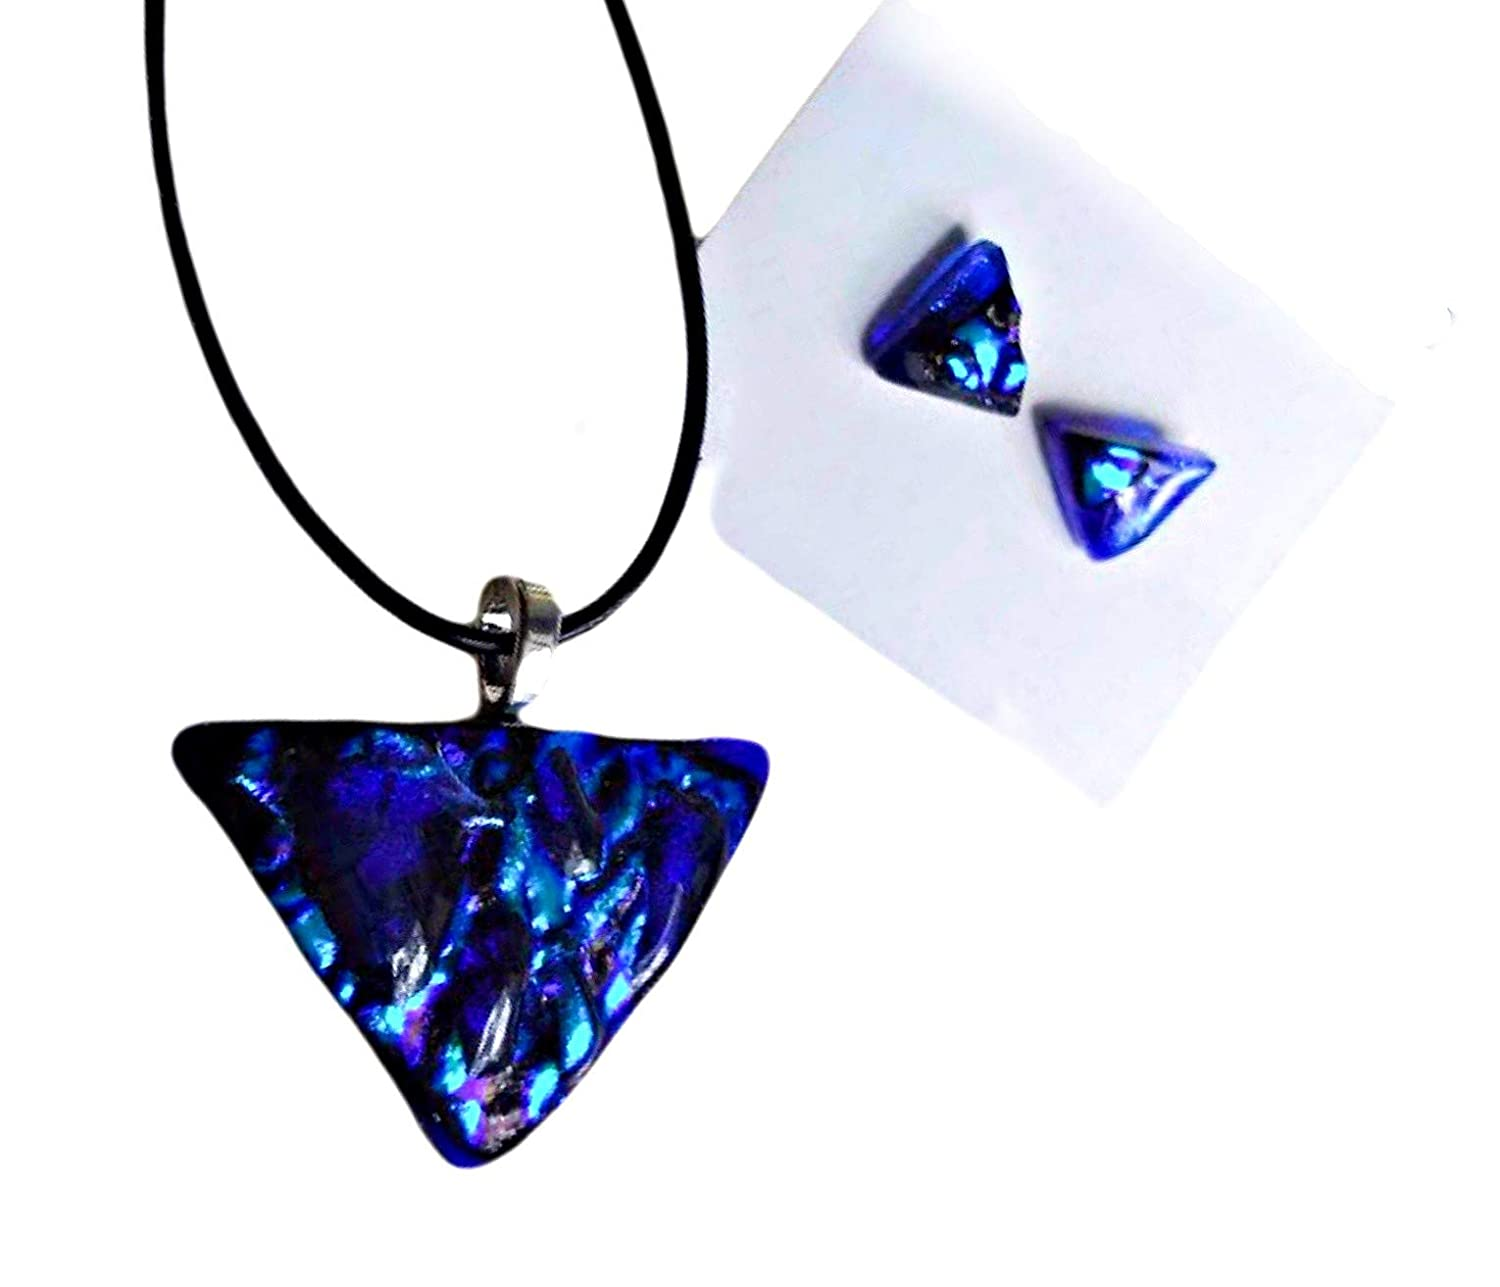 Fused glass crystal necklace